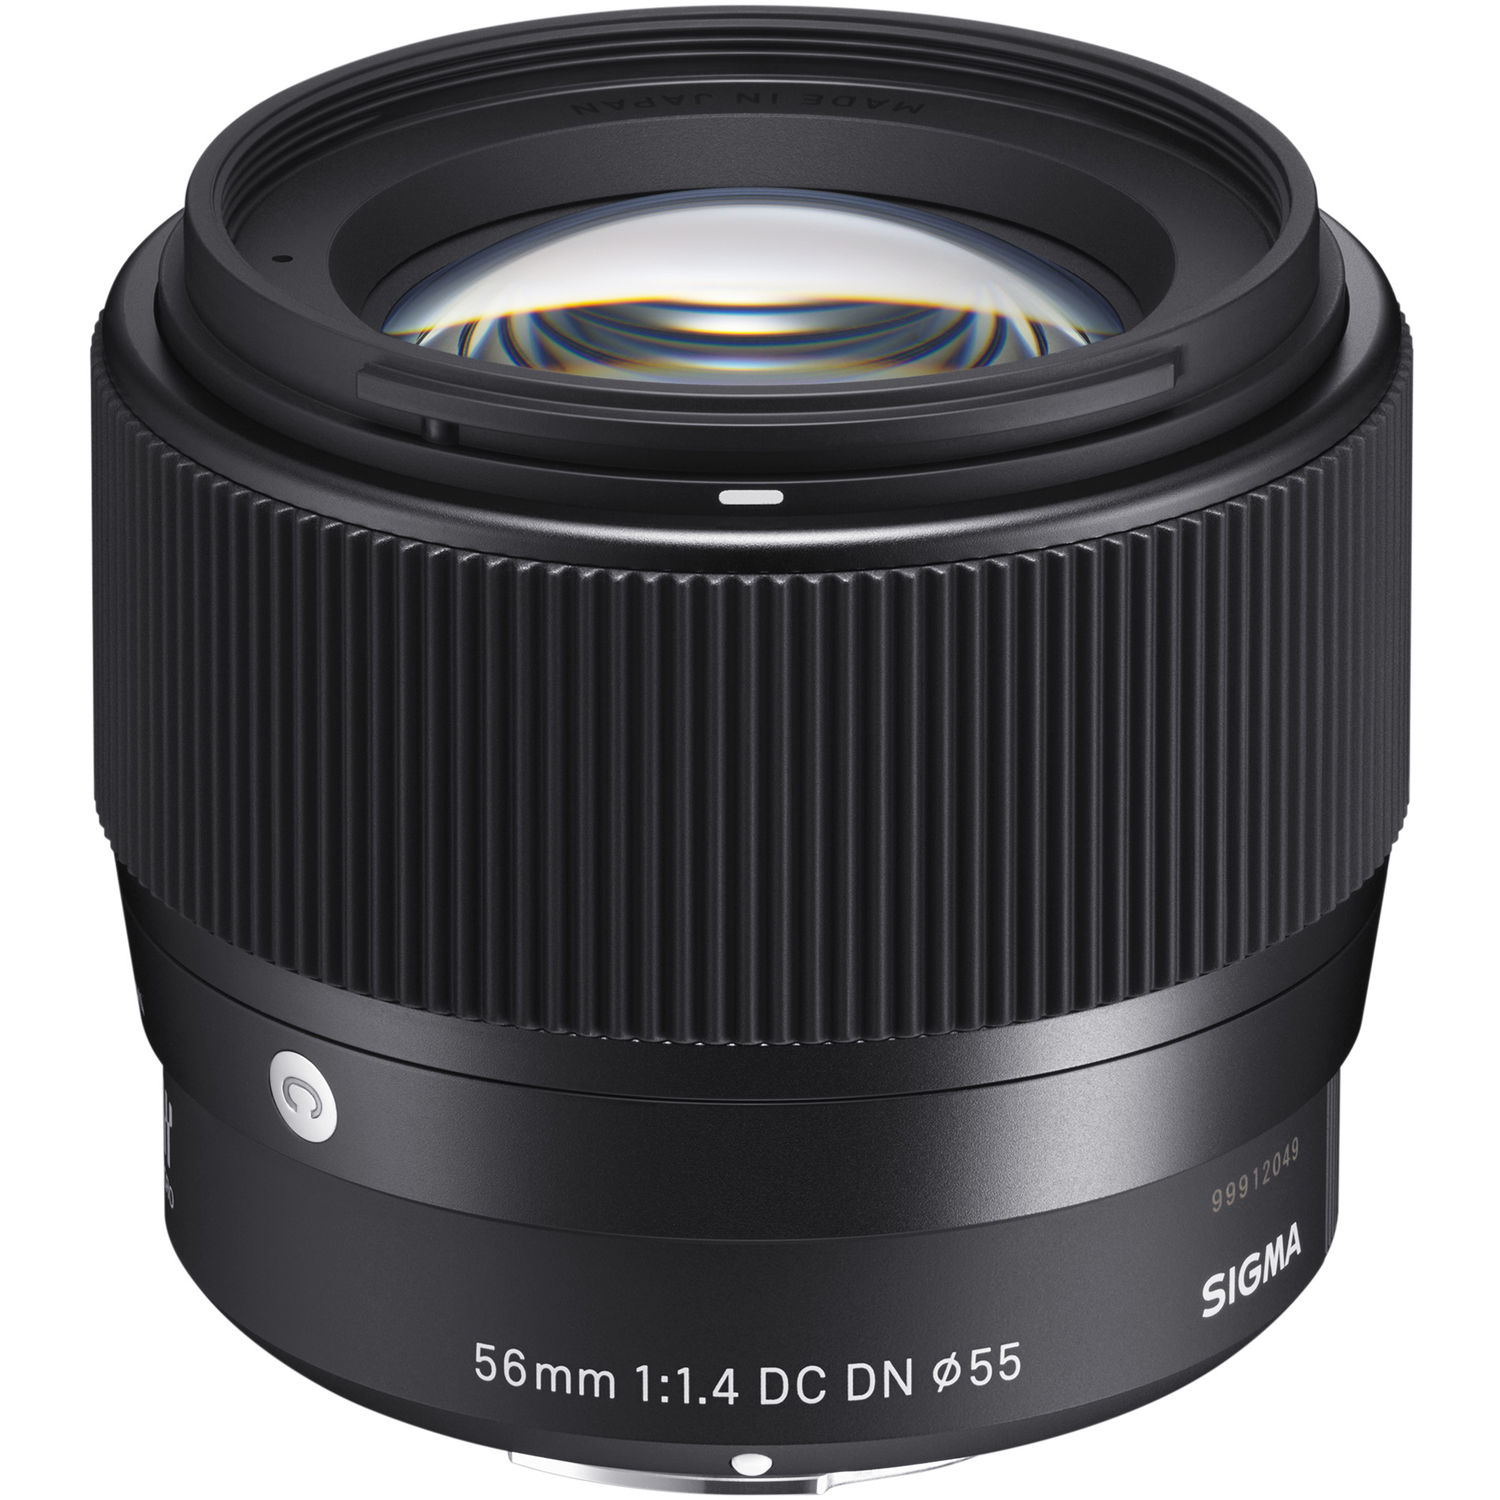 Image for Sigma 56mm f/1.4 DC DN Contemporary Lens for Sony E 351965 from Circuit City